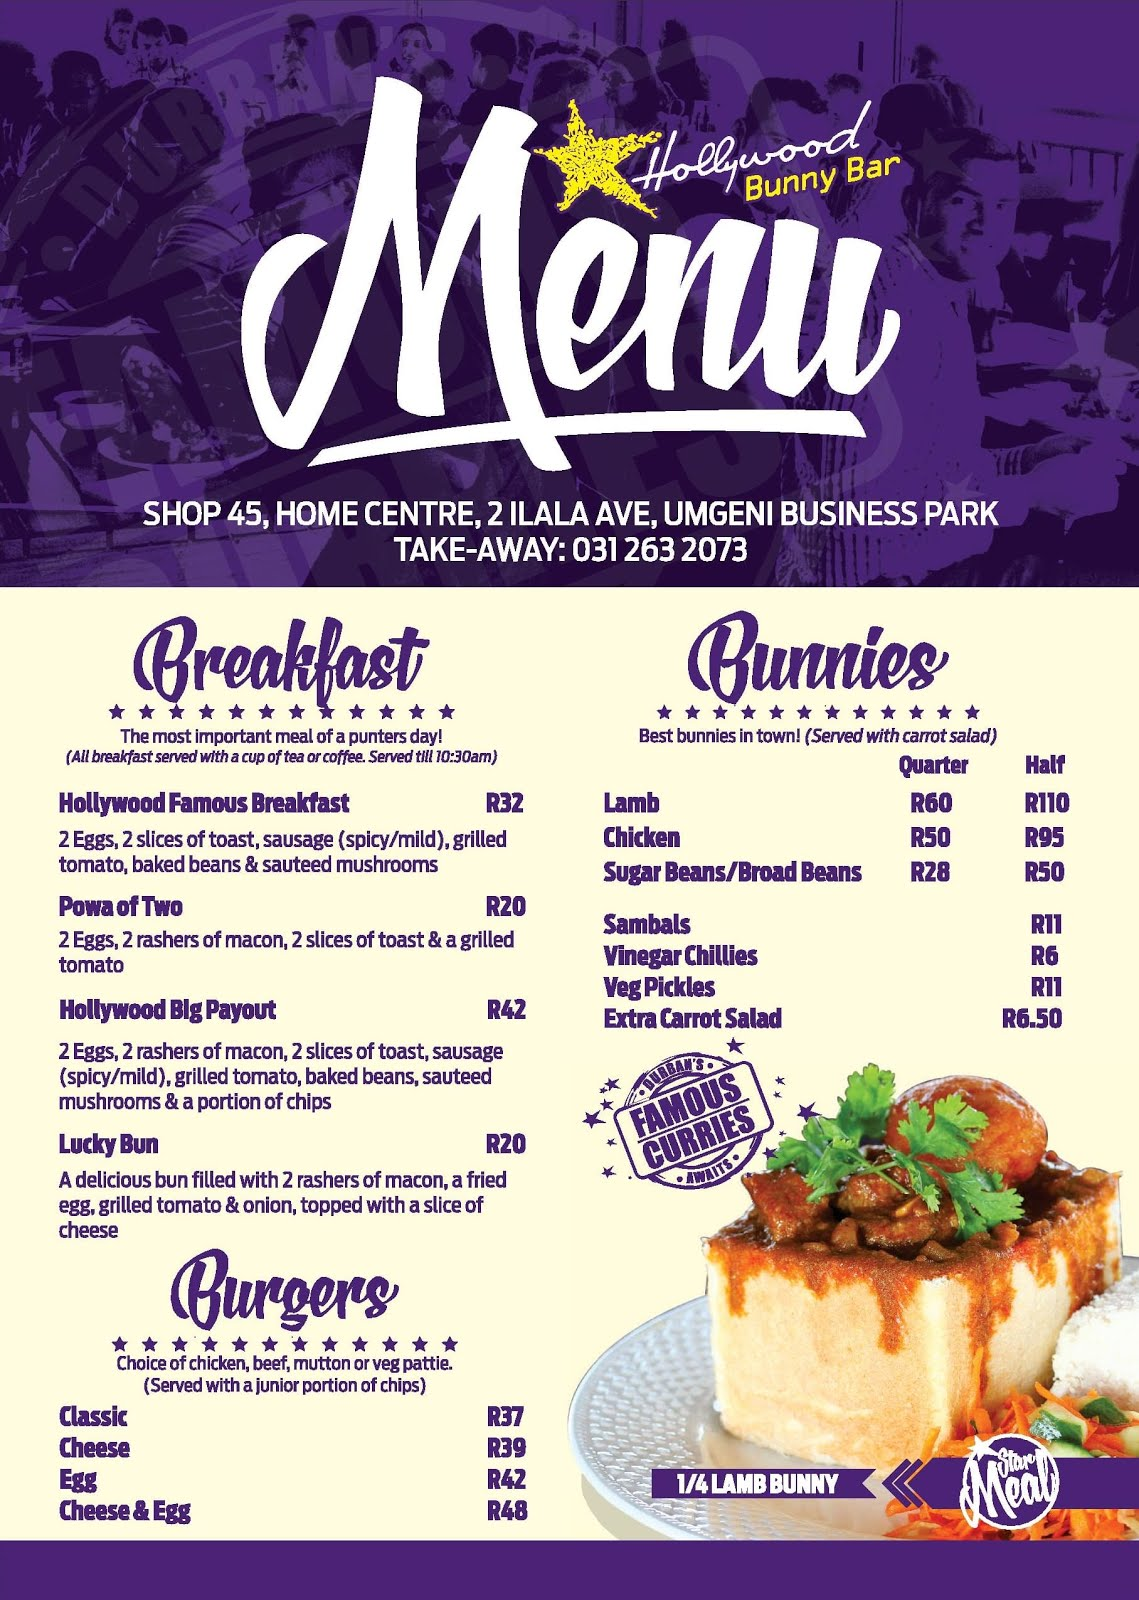 Hollywood Bunny Bar Menu Page 1 - Breakfast - Bunny Chows - Bunnies - Burgers